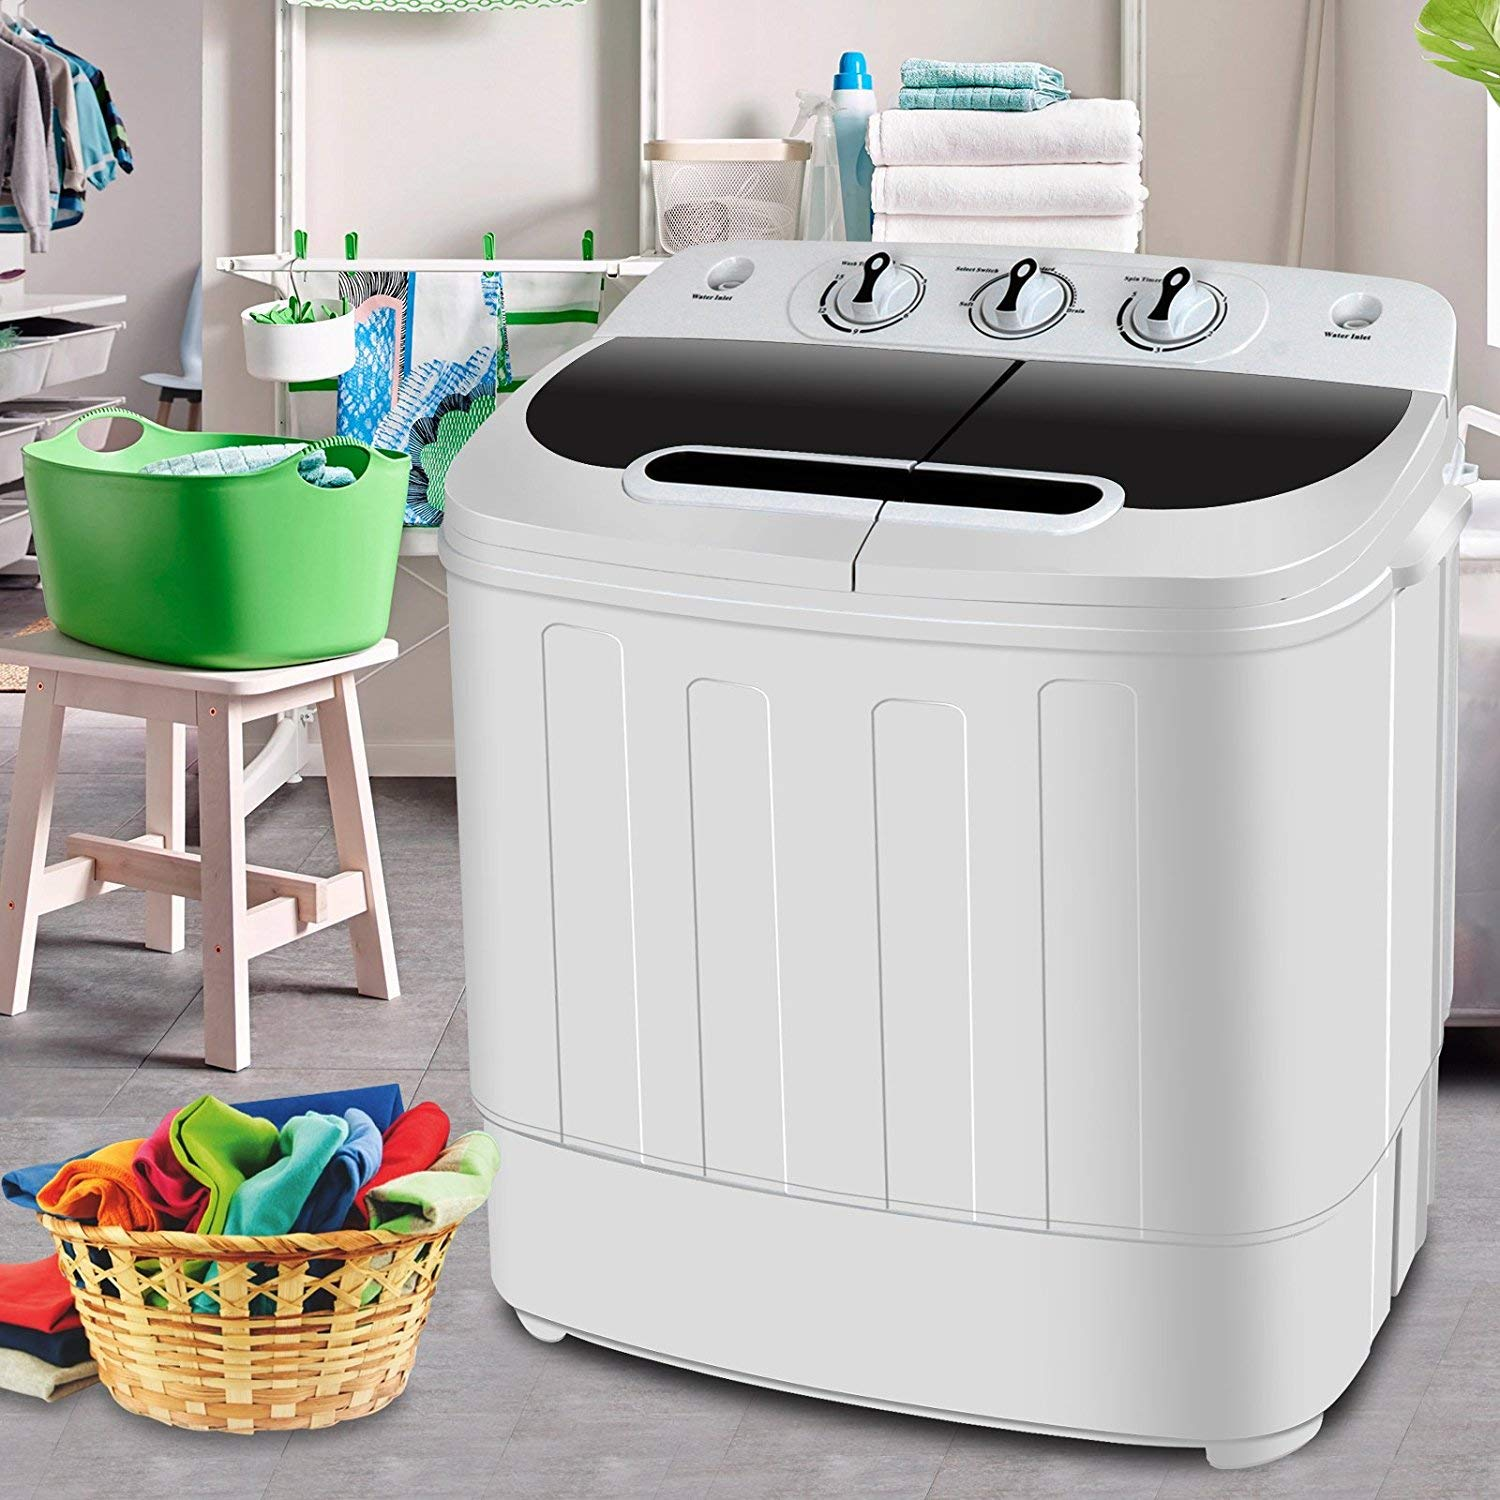 BBBuy 13lbs Portable Mini Compact Twin Tub Washing Machine Washer Spin Dryer Cycle for Dorms, Apartments, RVs, Camping, College Rooms